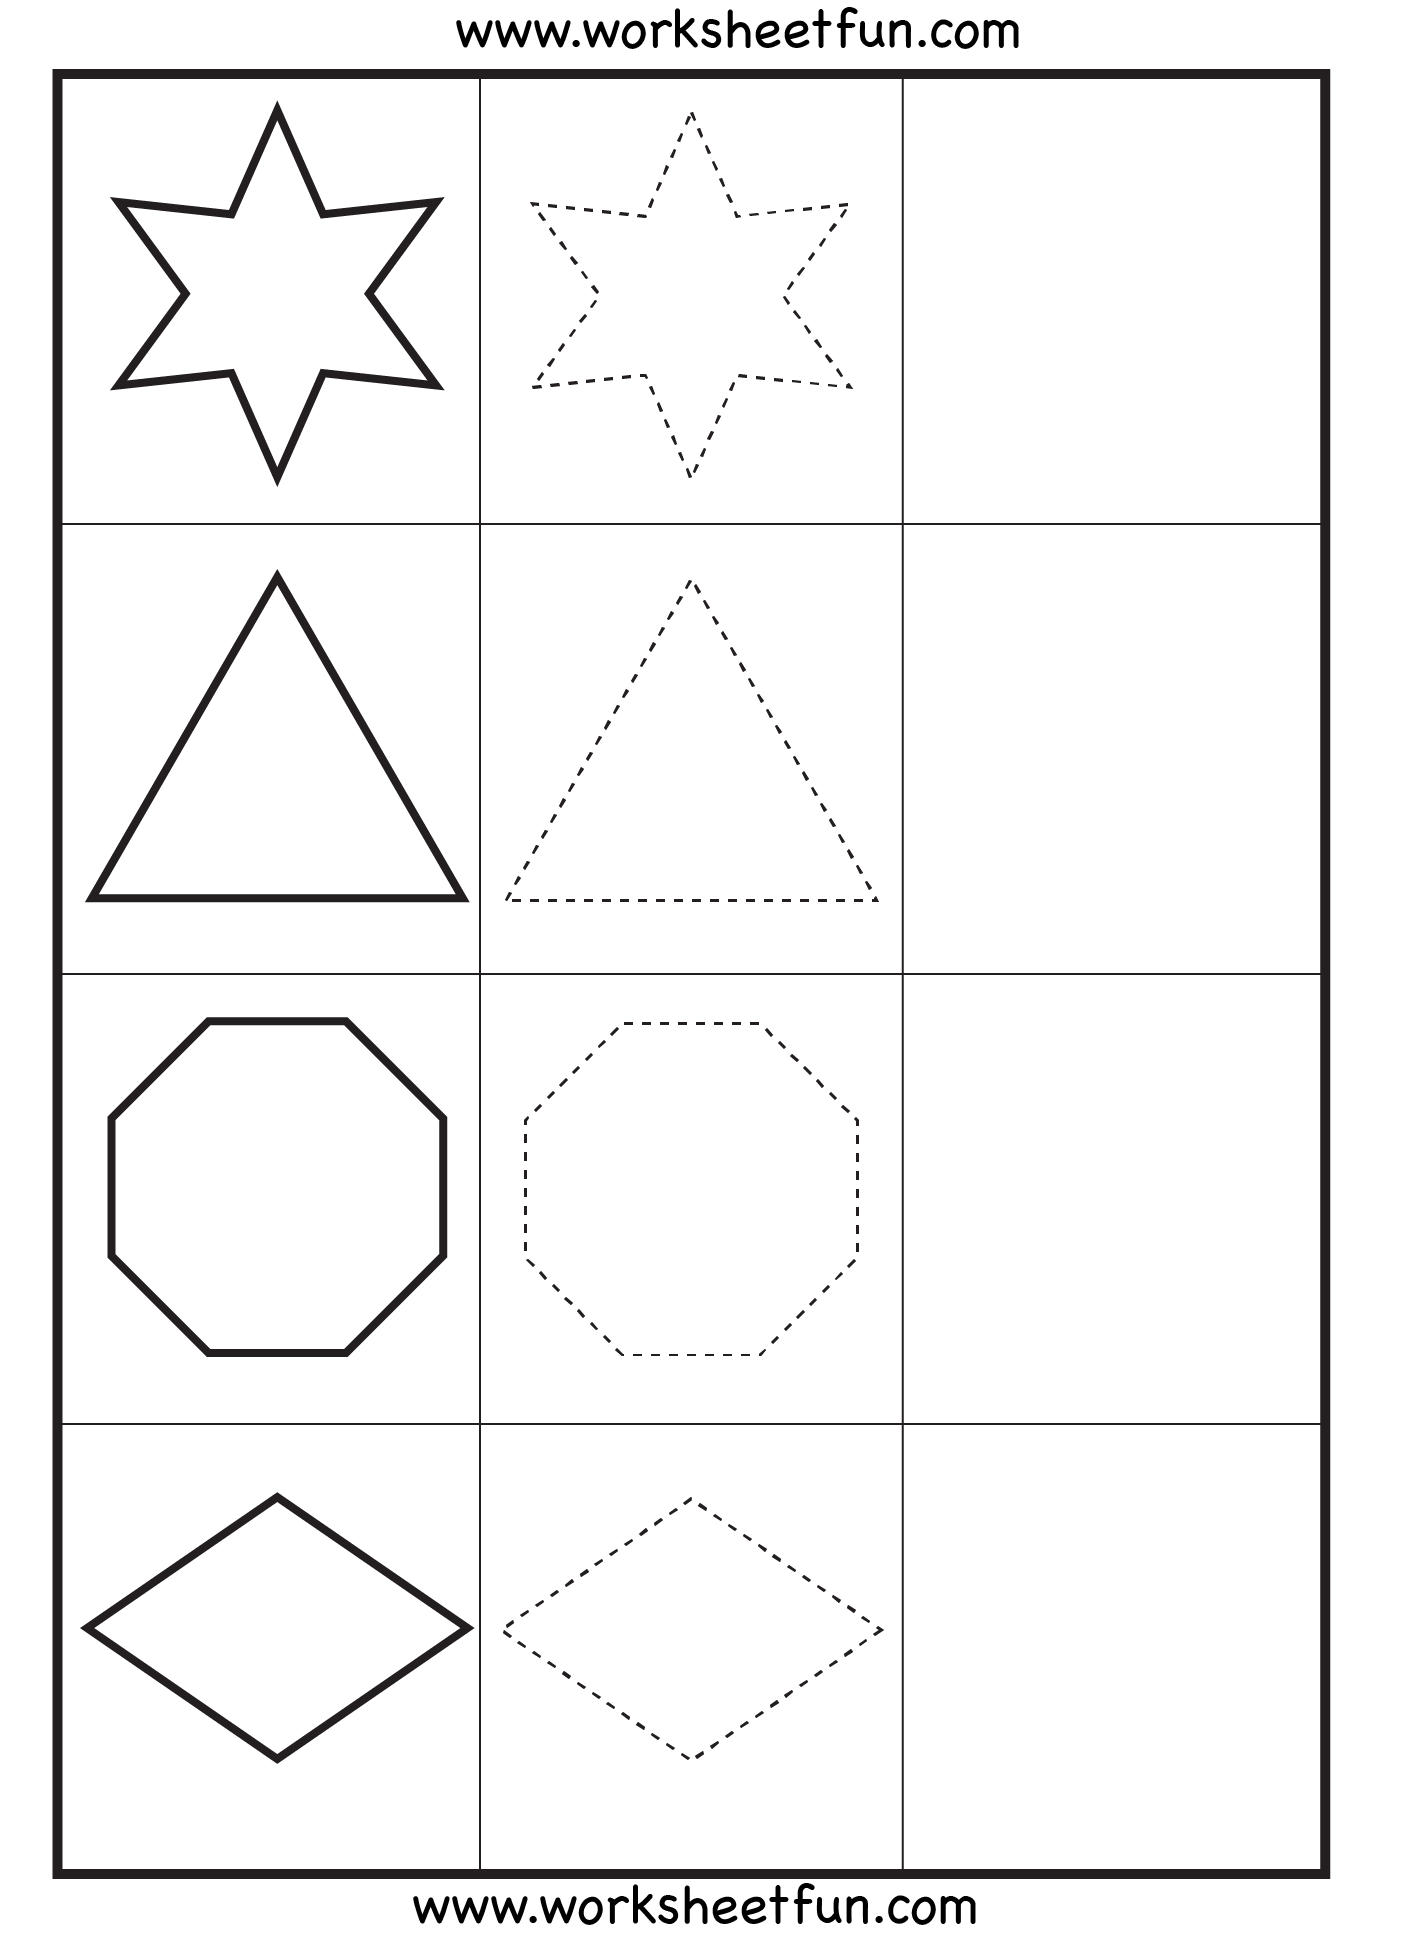 Preschool Worksheets Online and Pre K Learning Christmas Colors Worksheets Google Search